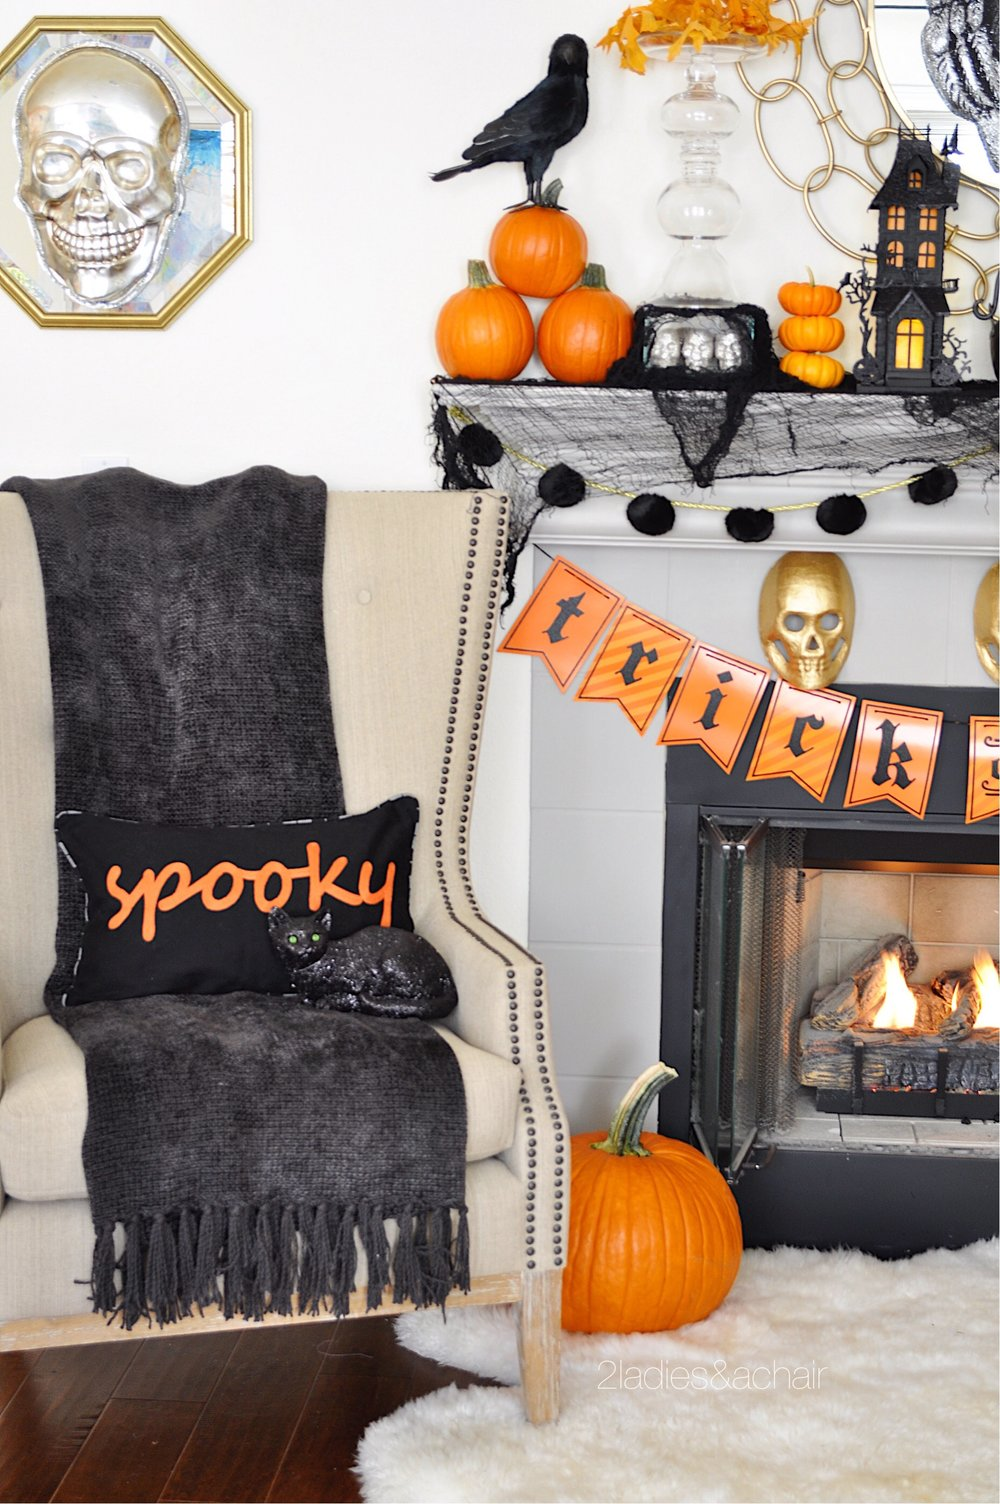 halloween mantel decorations FullSizeRender(84).jpg